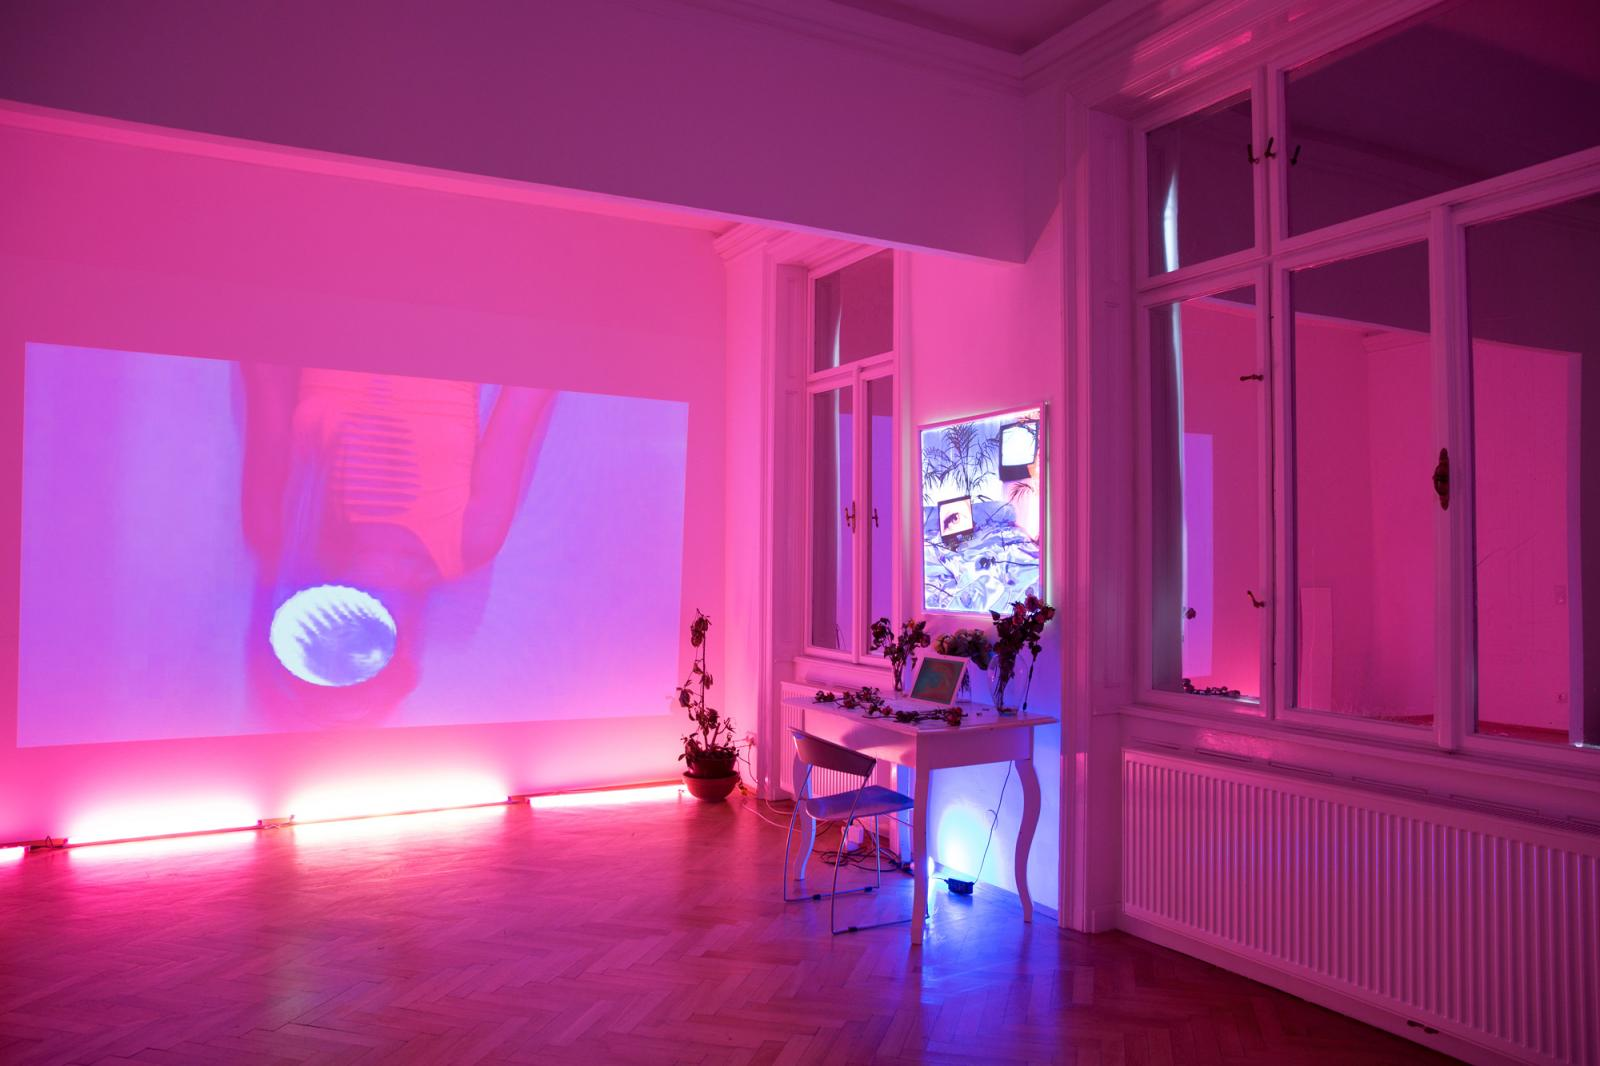 """Signe Pierce """"Virtual Normality"""" (2017); installation view at Galerie Nathalie Halgand Copyright the artis and Galerie Nathalie Halgand"""